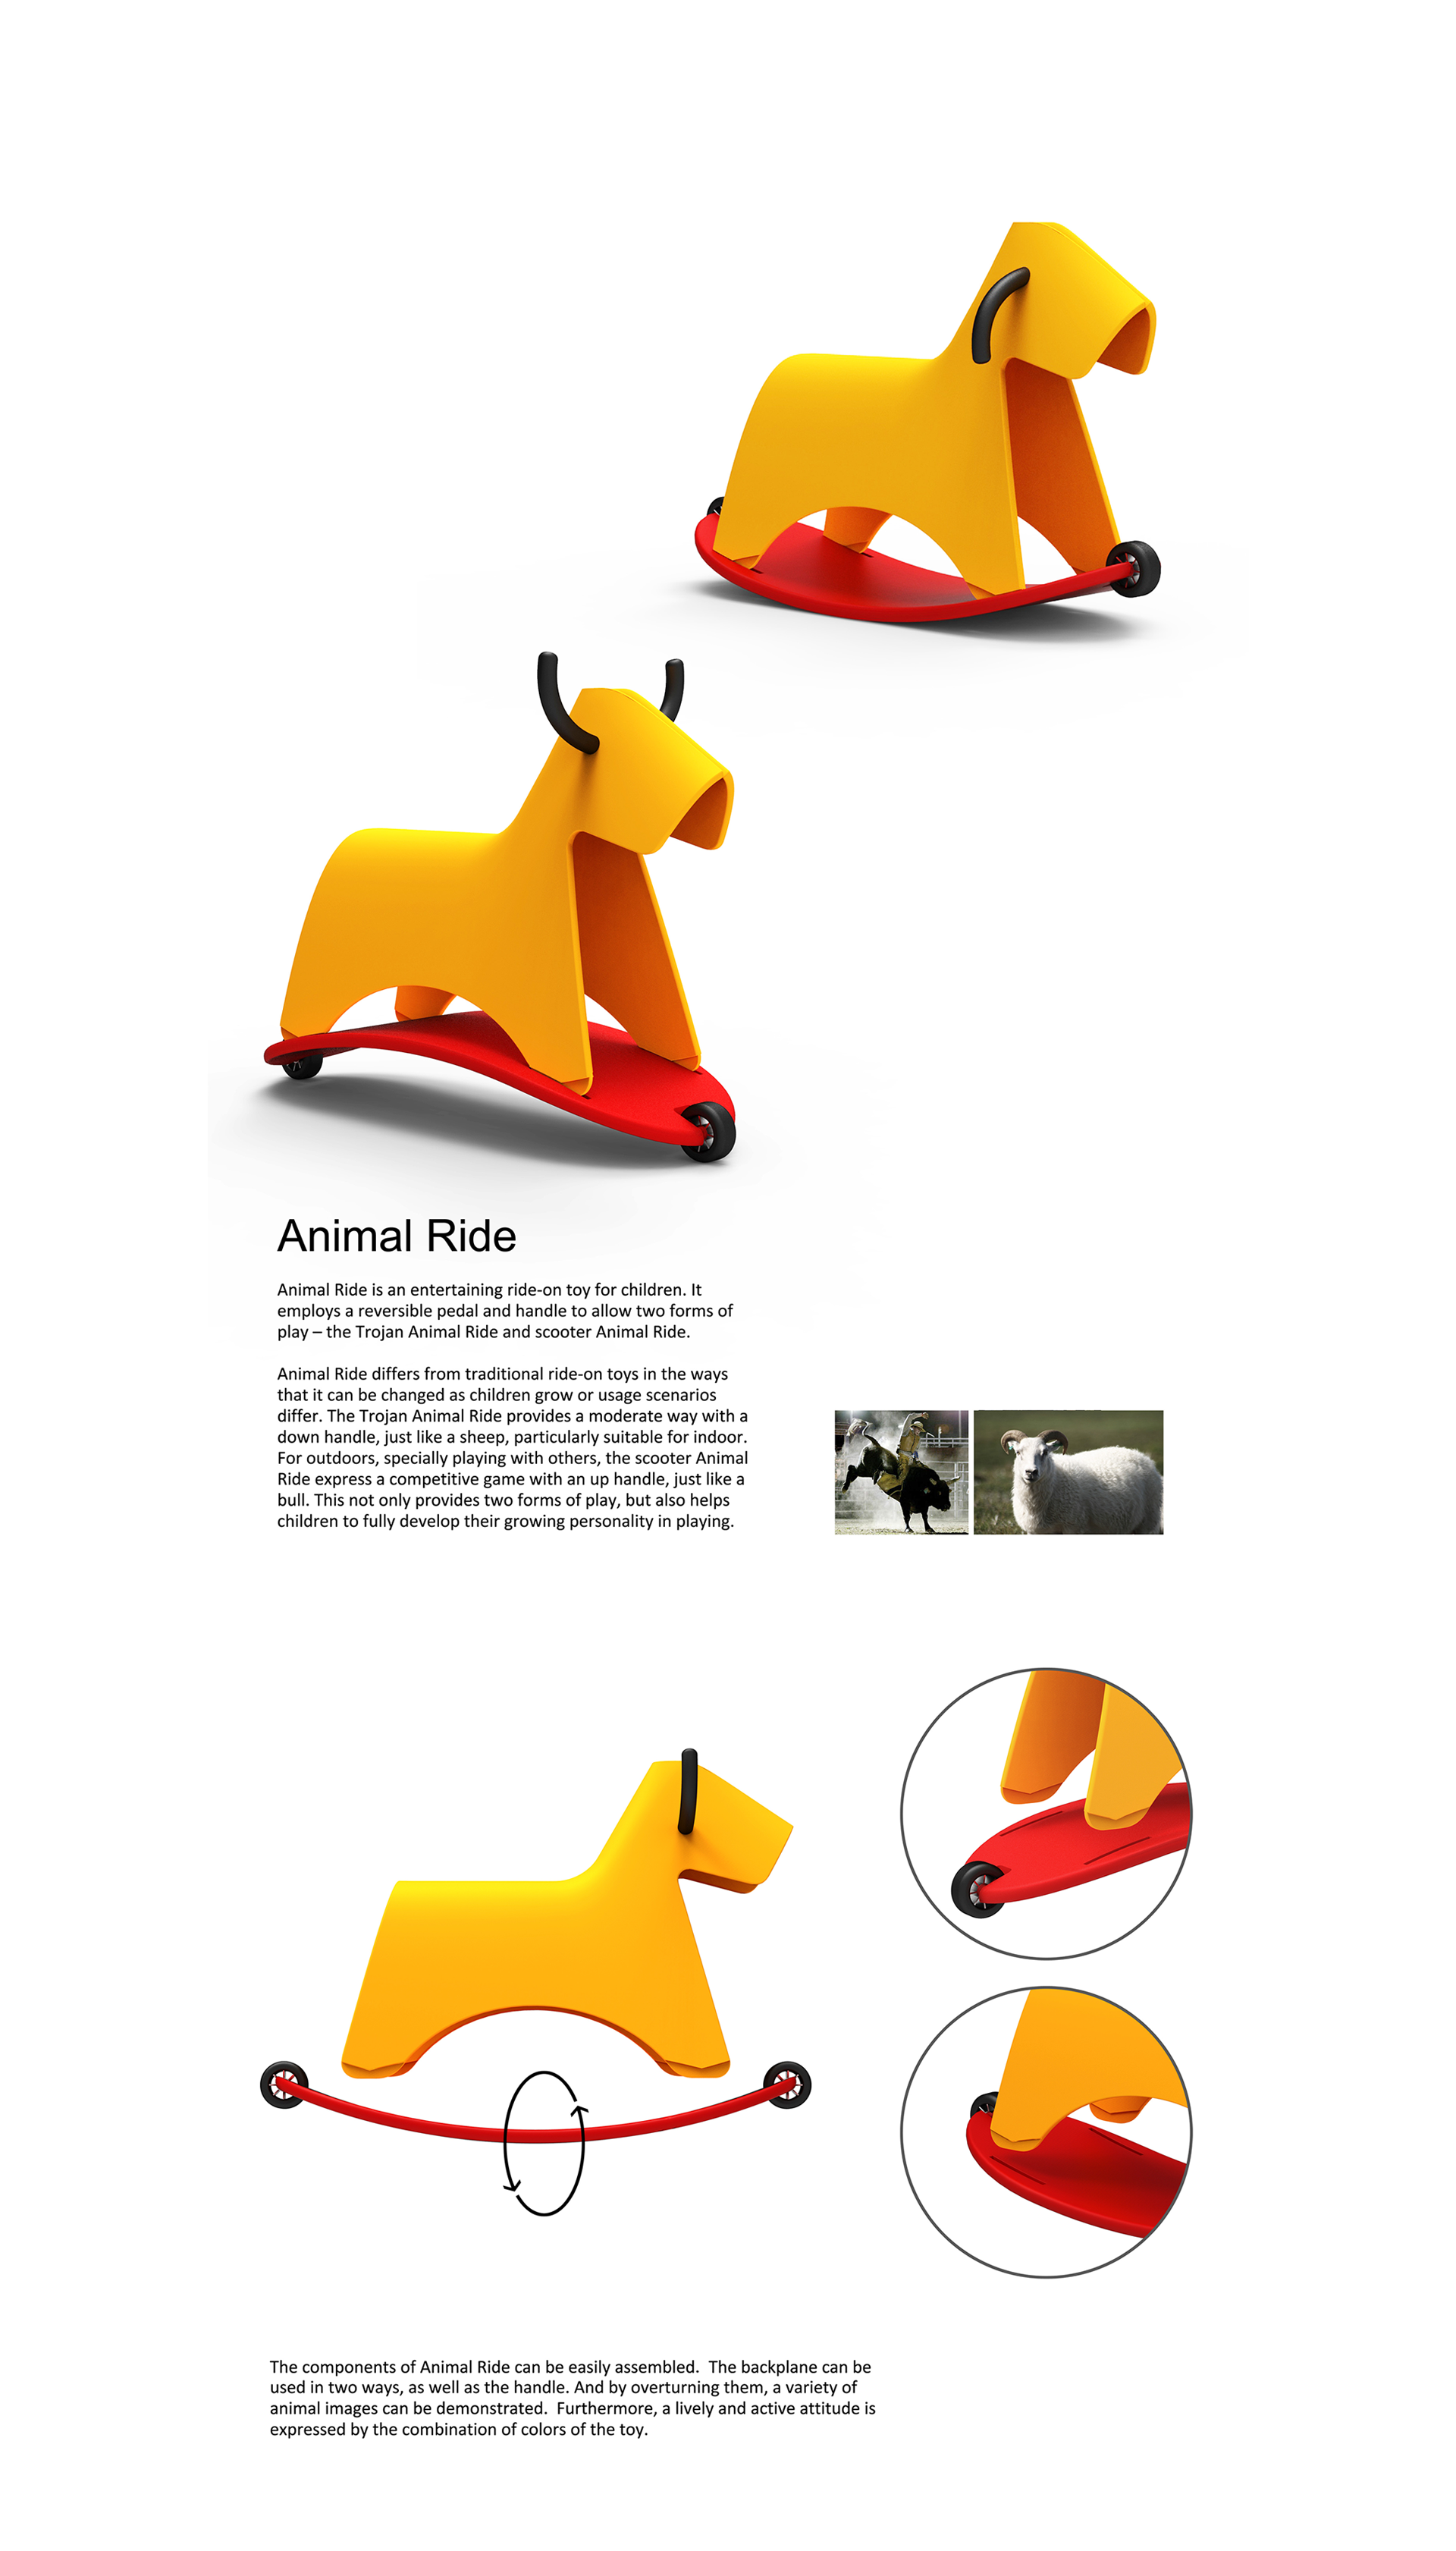 Animal-ride2_01.png